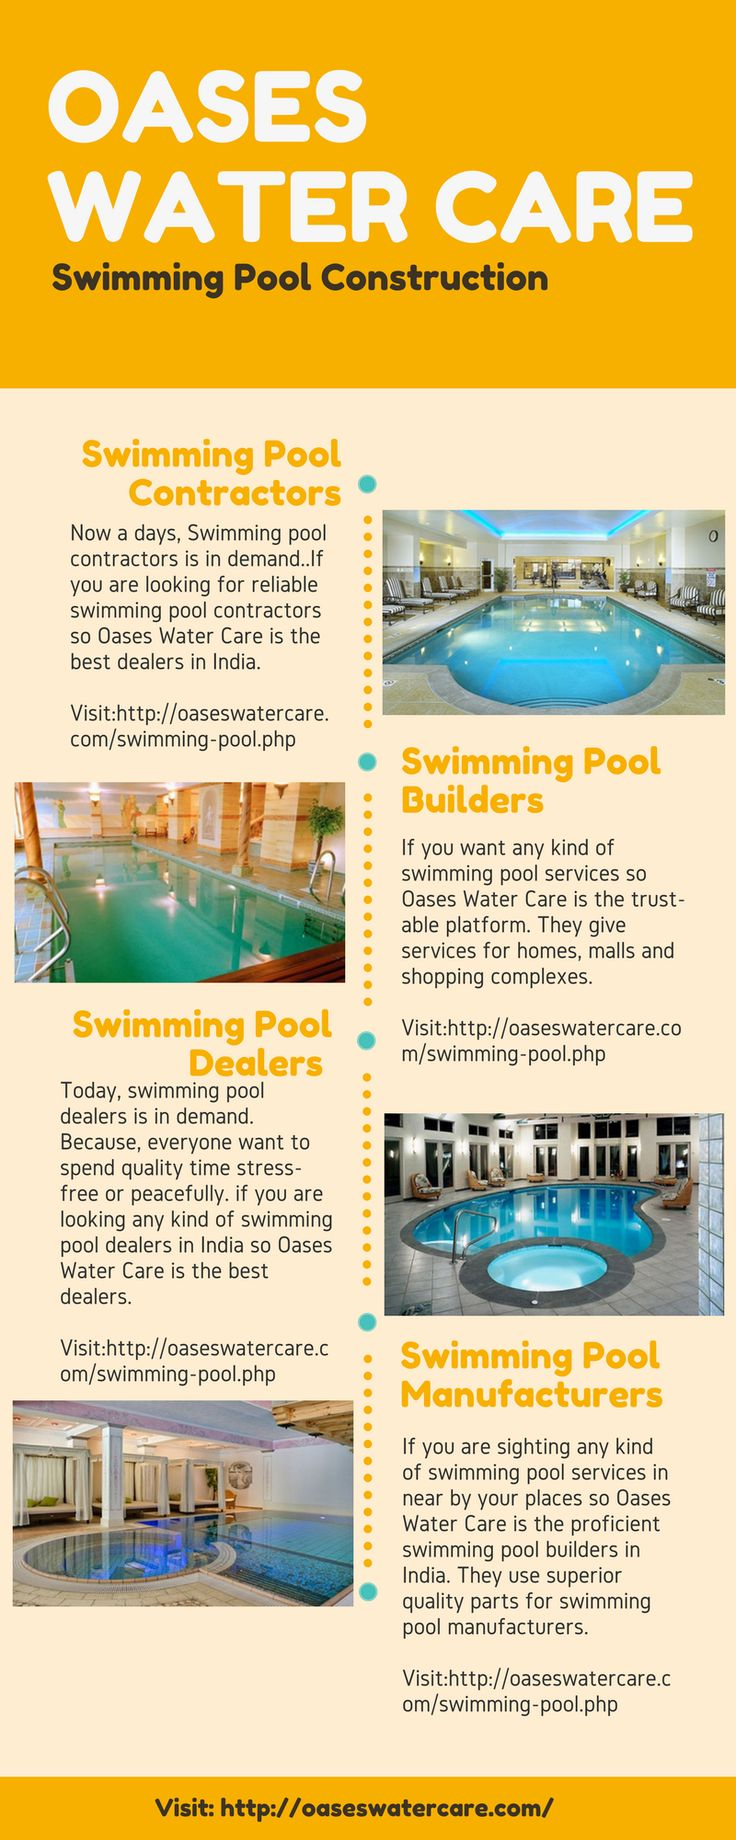 17 best ideas about swimming pool construction on pinterest diy swimming pool diy pool and for How to take care of your swimming pool